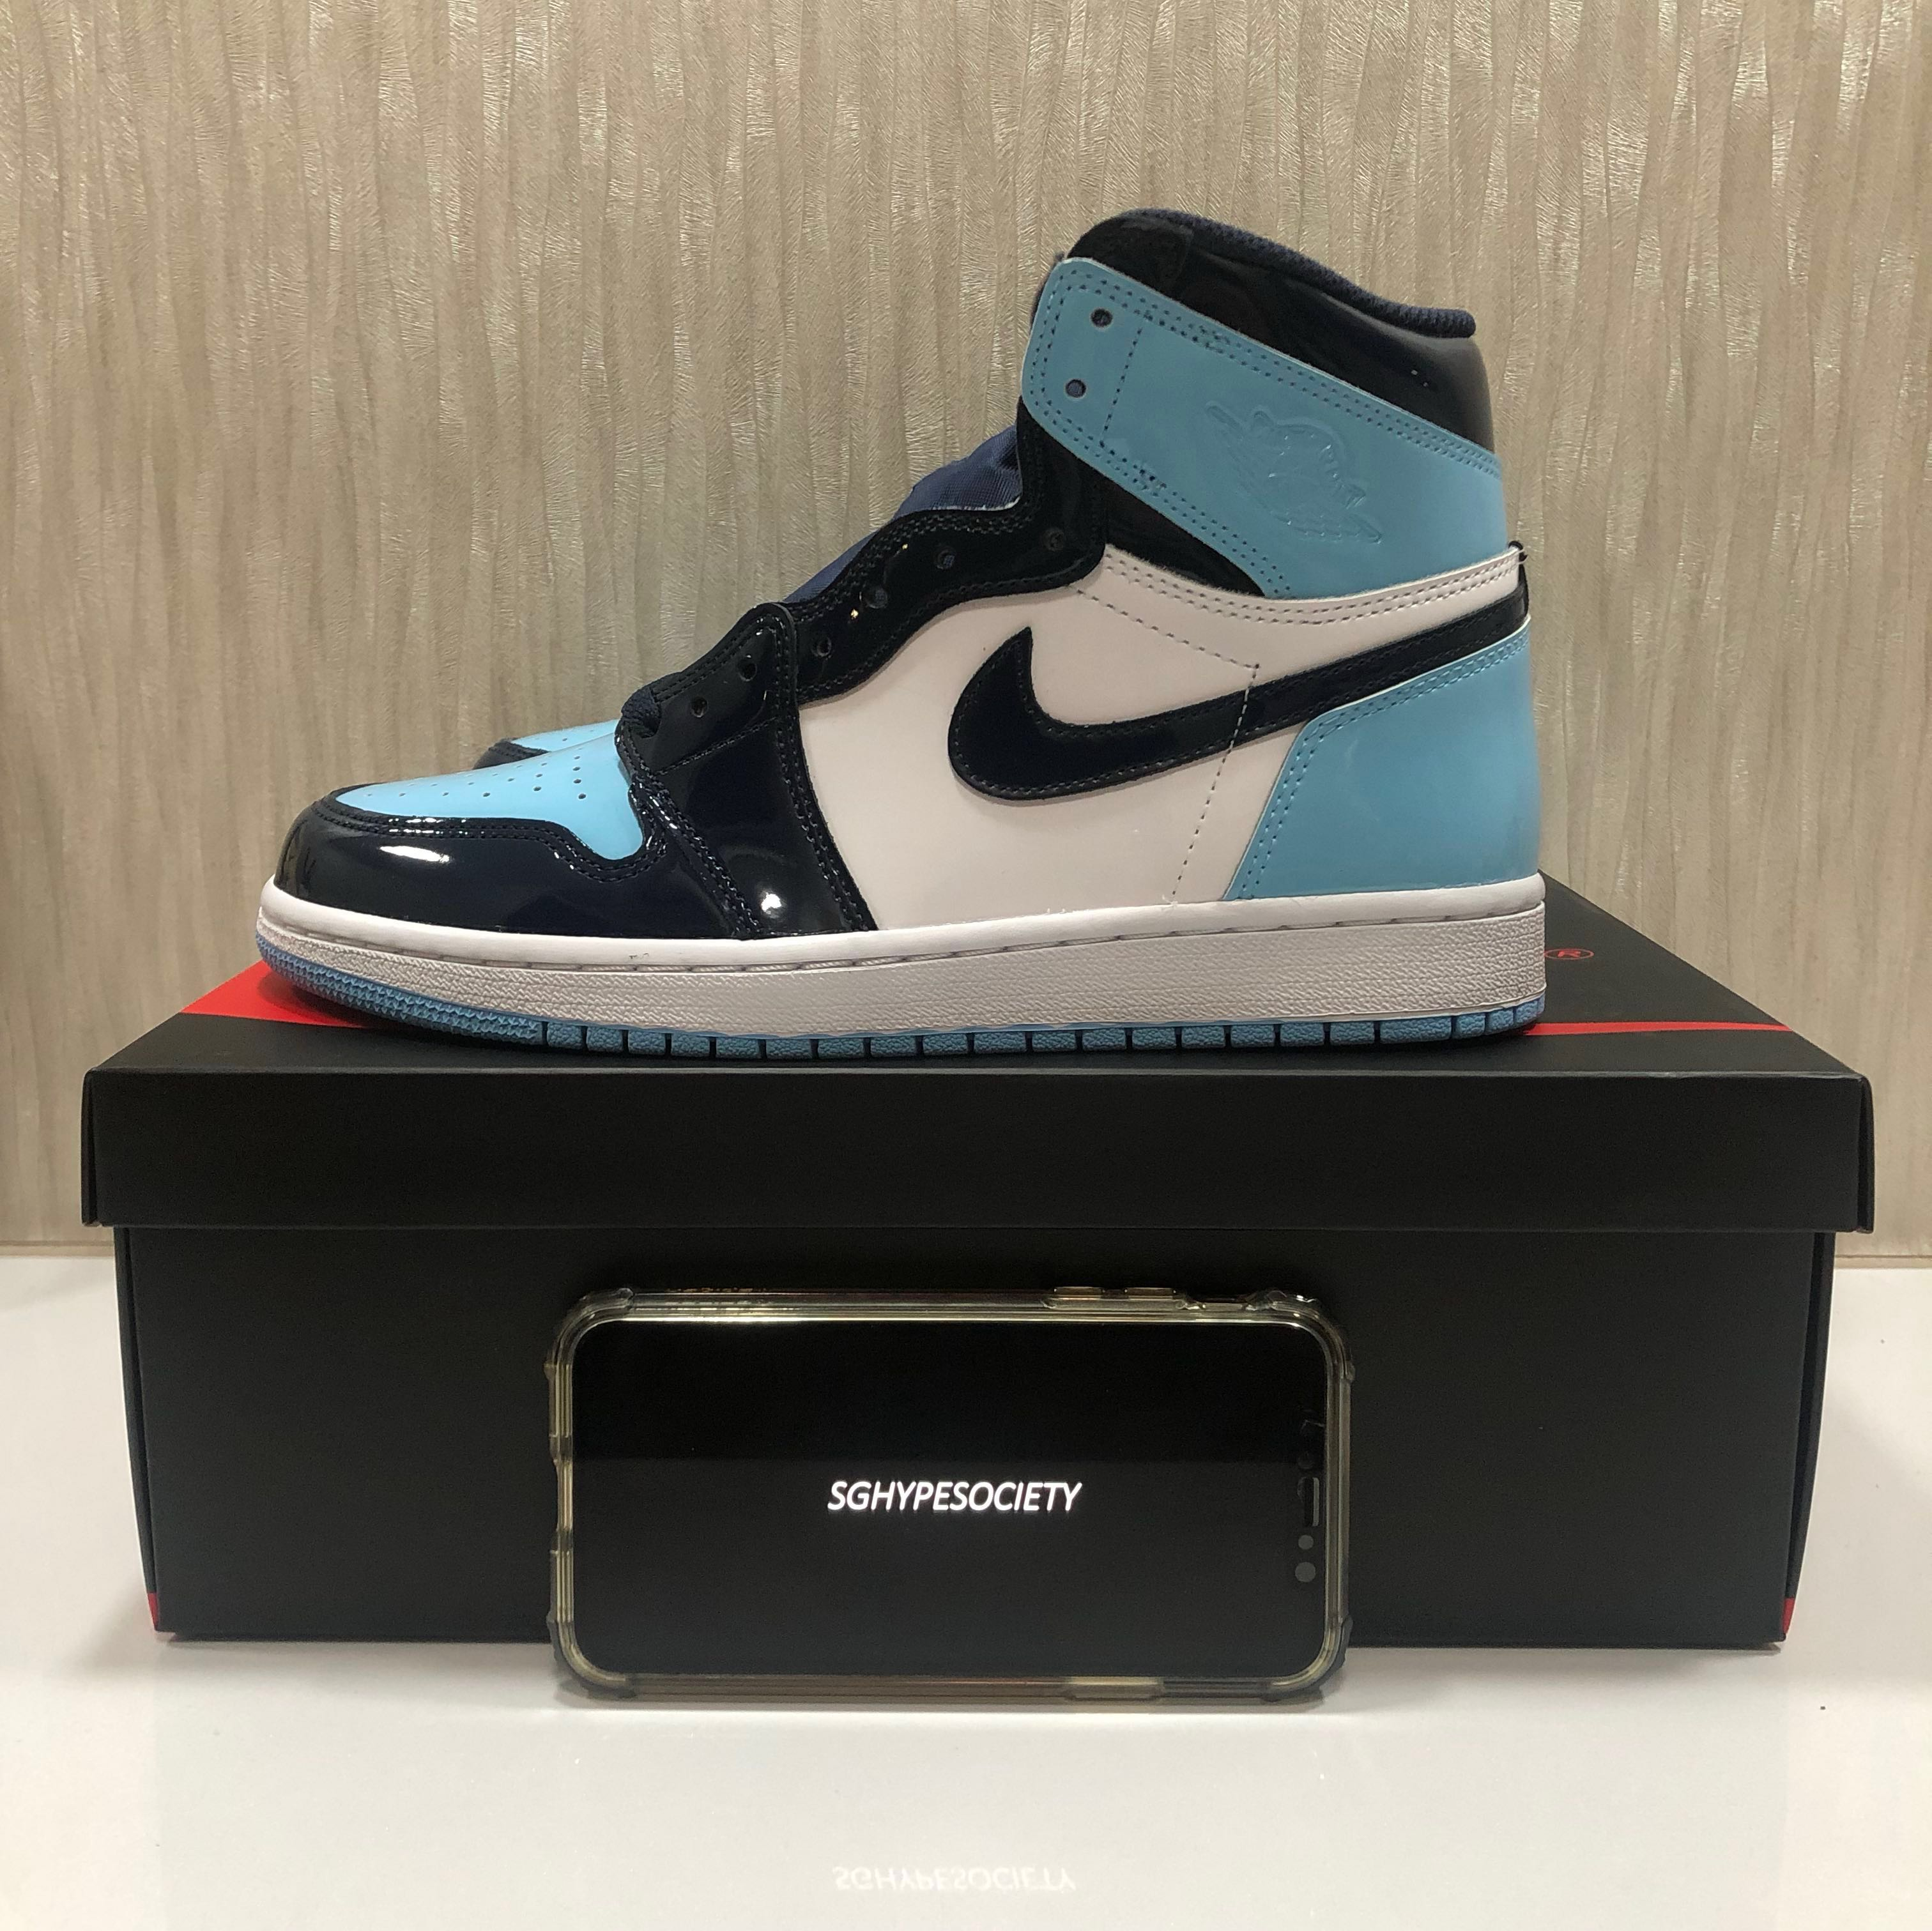 07b0fcea0f077f INSTOCK  Air Jordan 1 Retro High OG UNC US6.5 8 US10 8.5